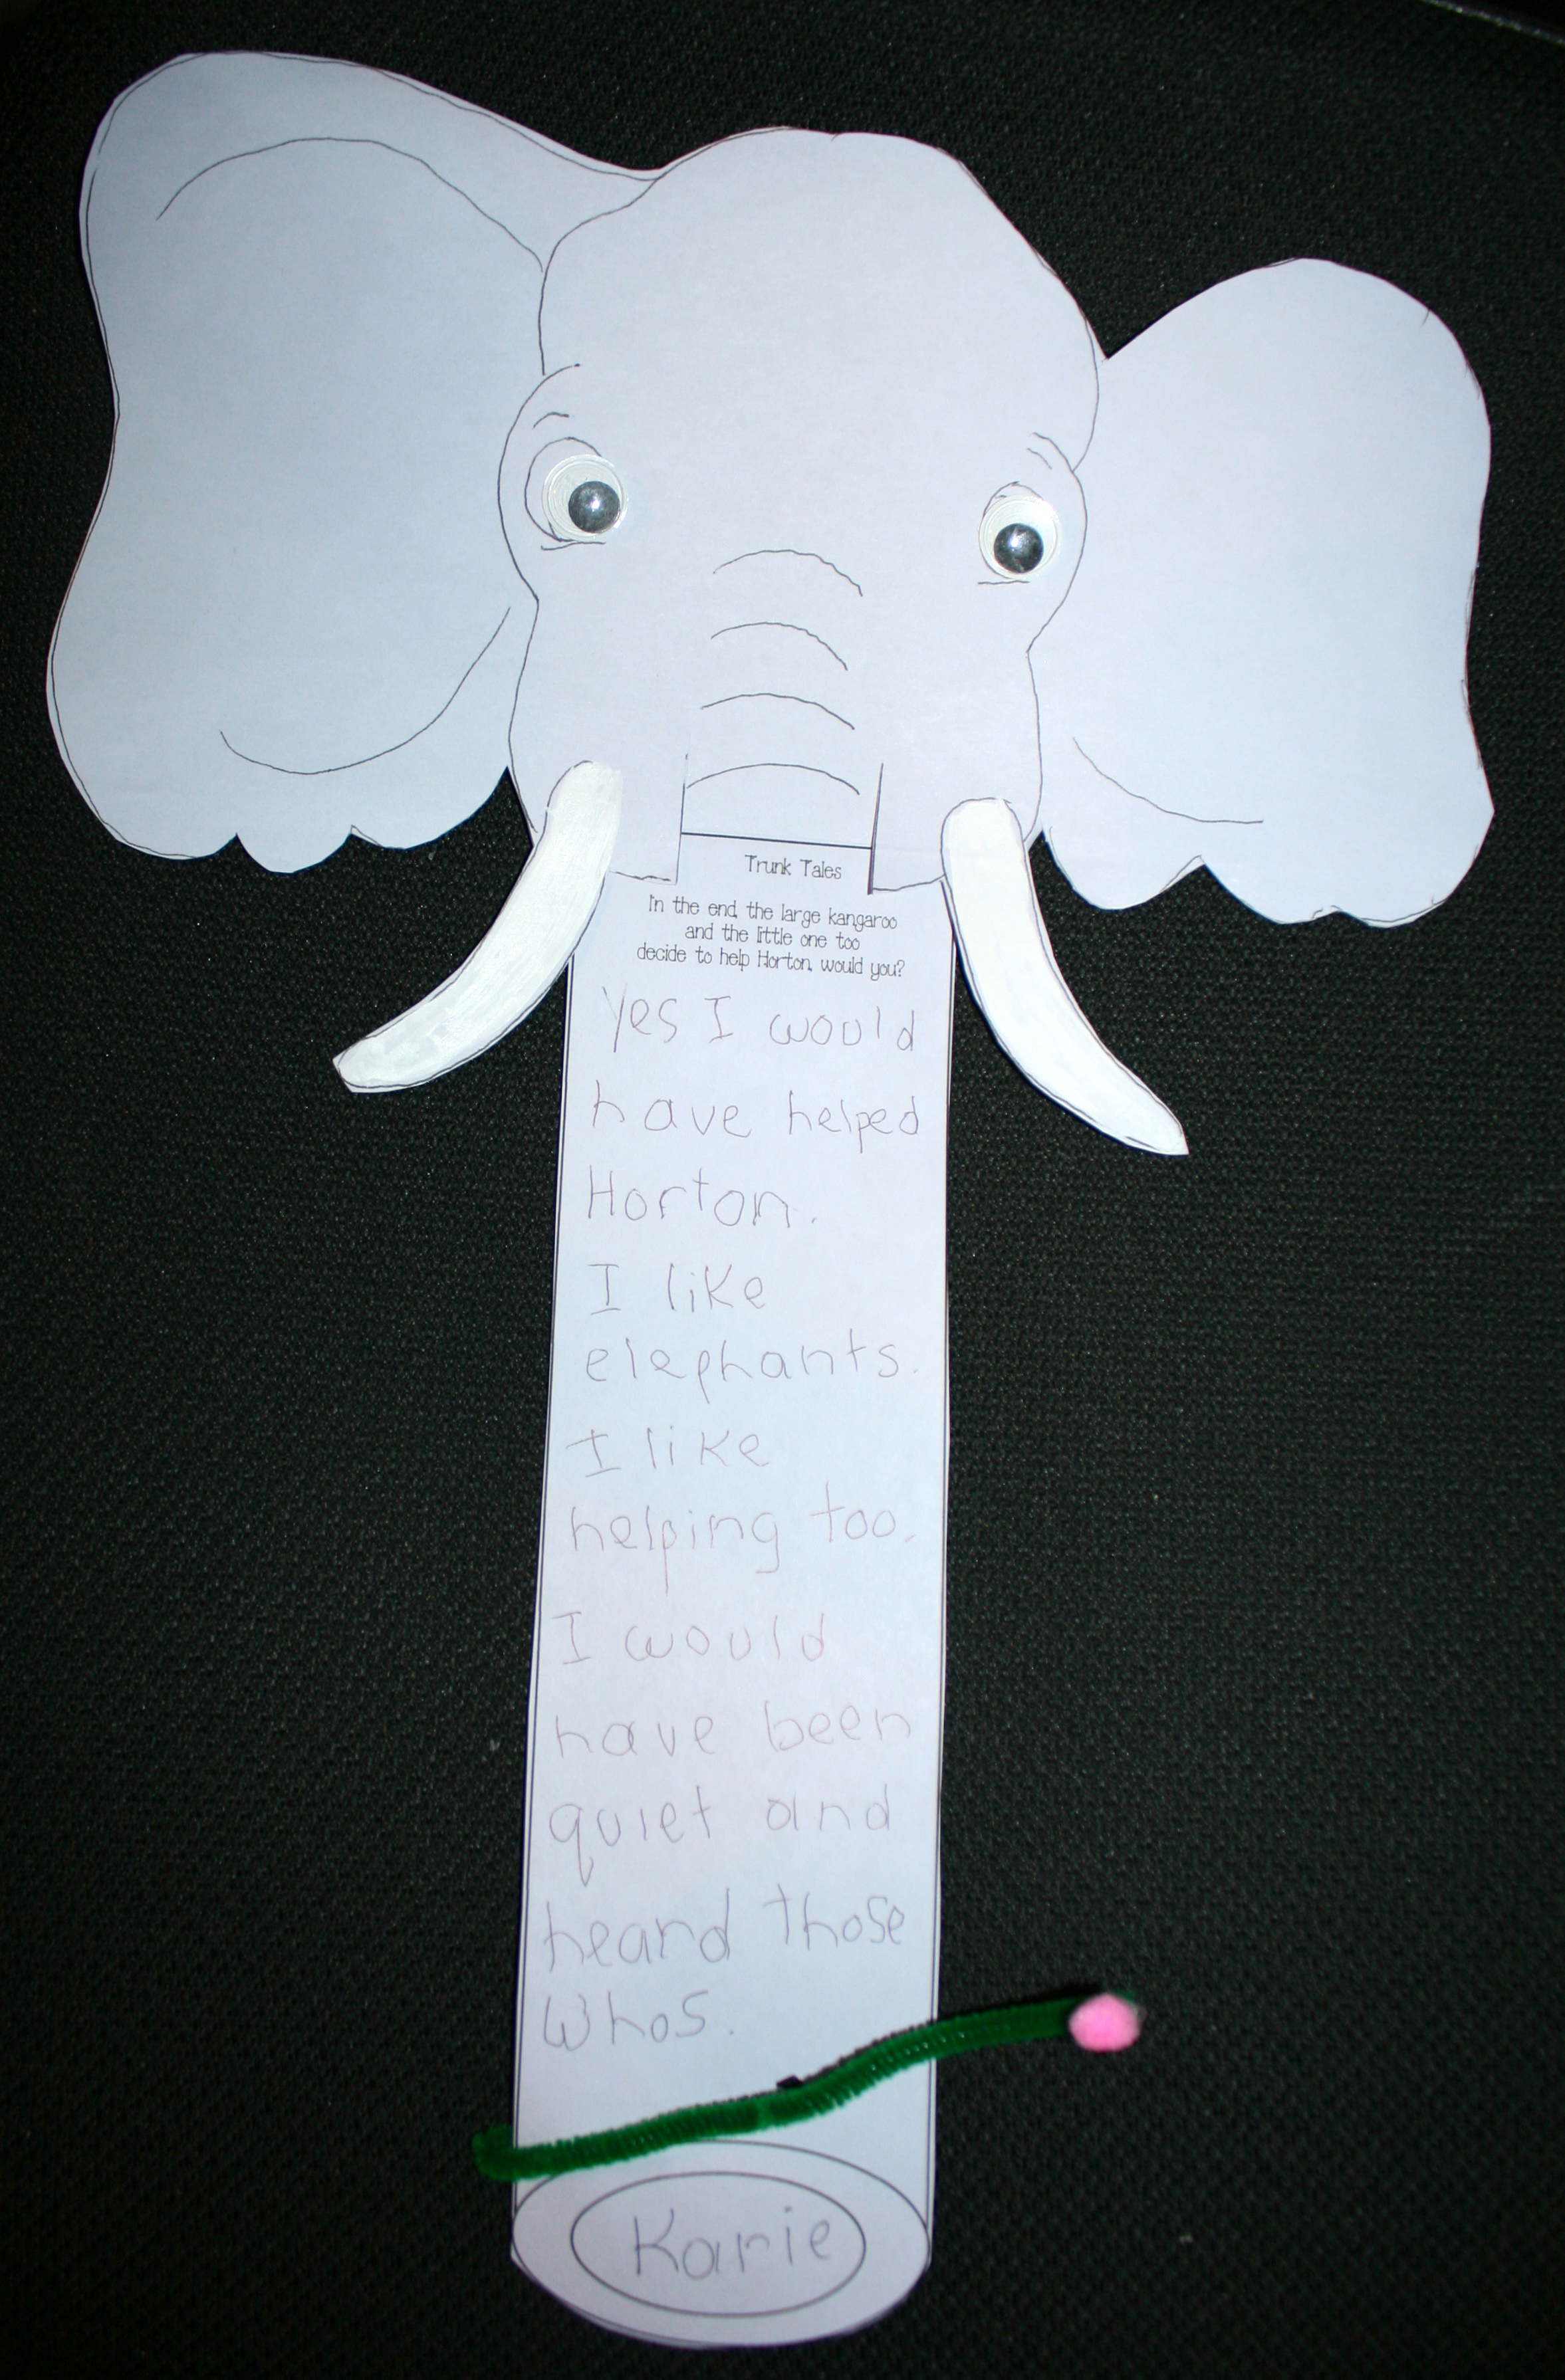 Horton writing prompts, Horton activities, horton lessons, horton crafts, horton puppets, whoville activities, whoville lessons, whoville crafts, whoville puppets, writing prompts for seuss, seuss writing prompts, writing prompts for March, bulletin boards for seuss, bulletin boards for Horton hears a who, elephant activities, horton bulletin board ideas,